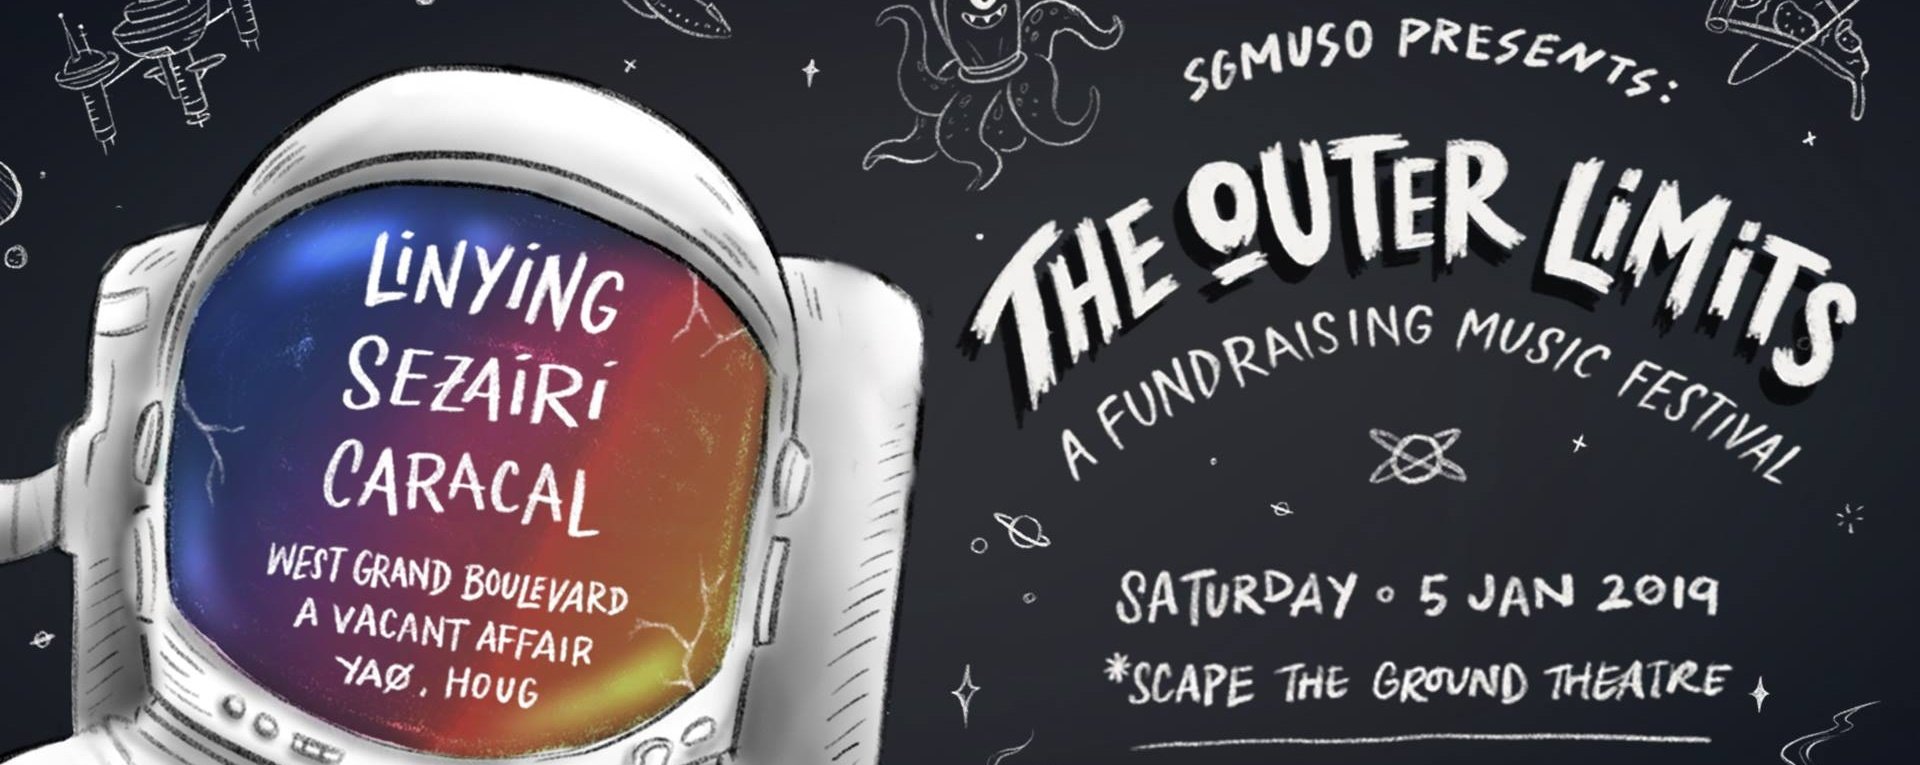 The Outer Limits (A Fundraising Music Festival)